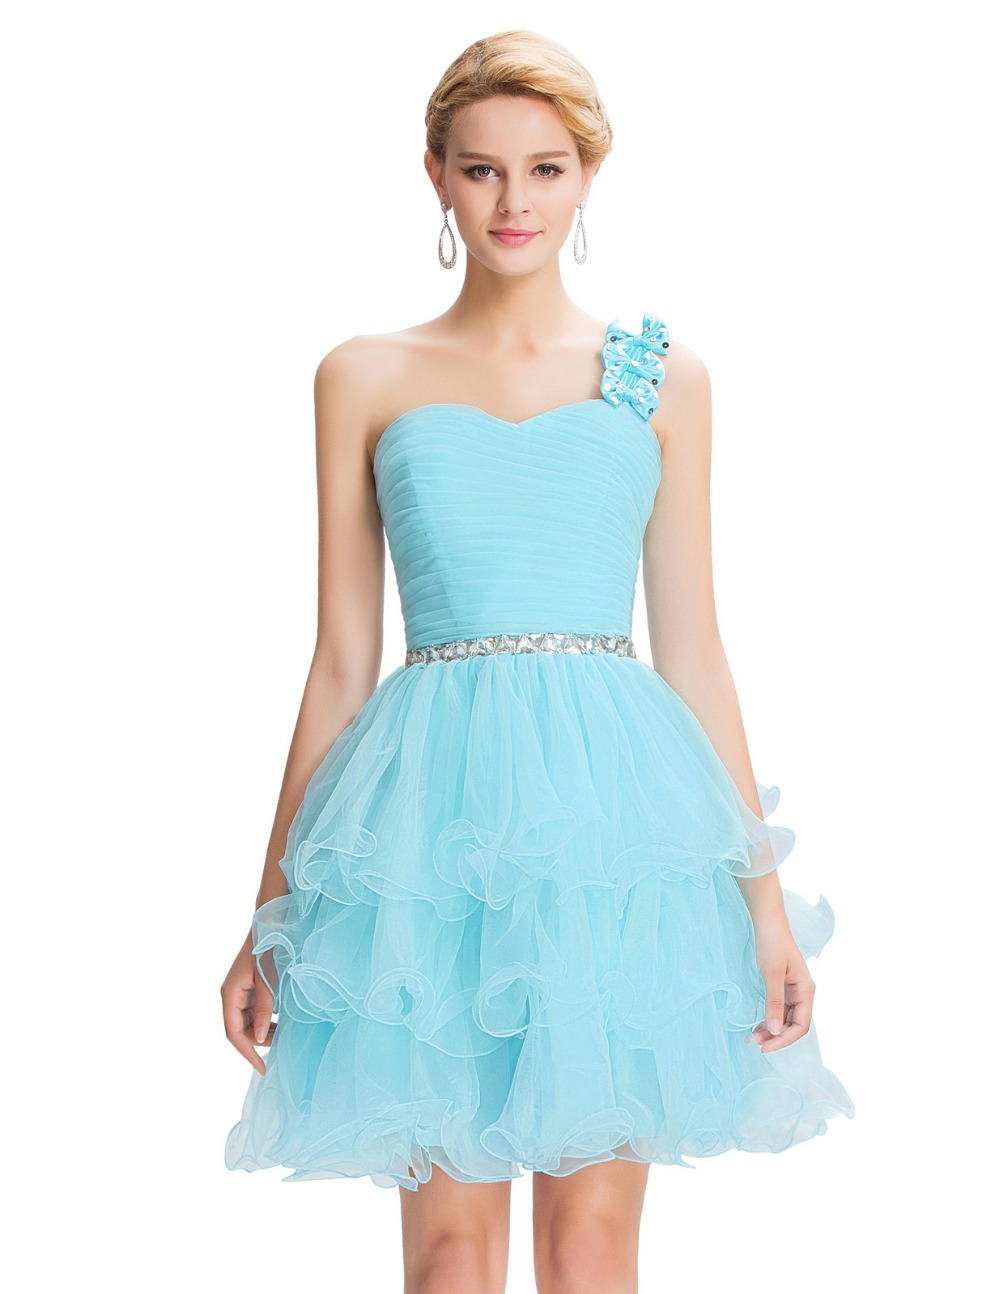 Puffy Short Prom Dresses | Cocktail Dresses 2016